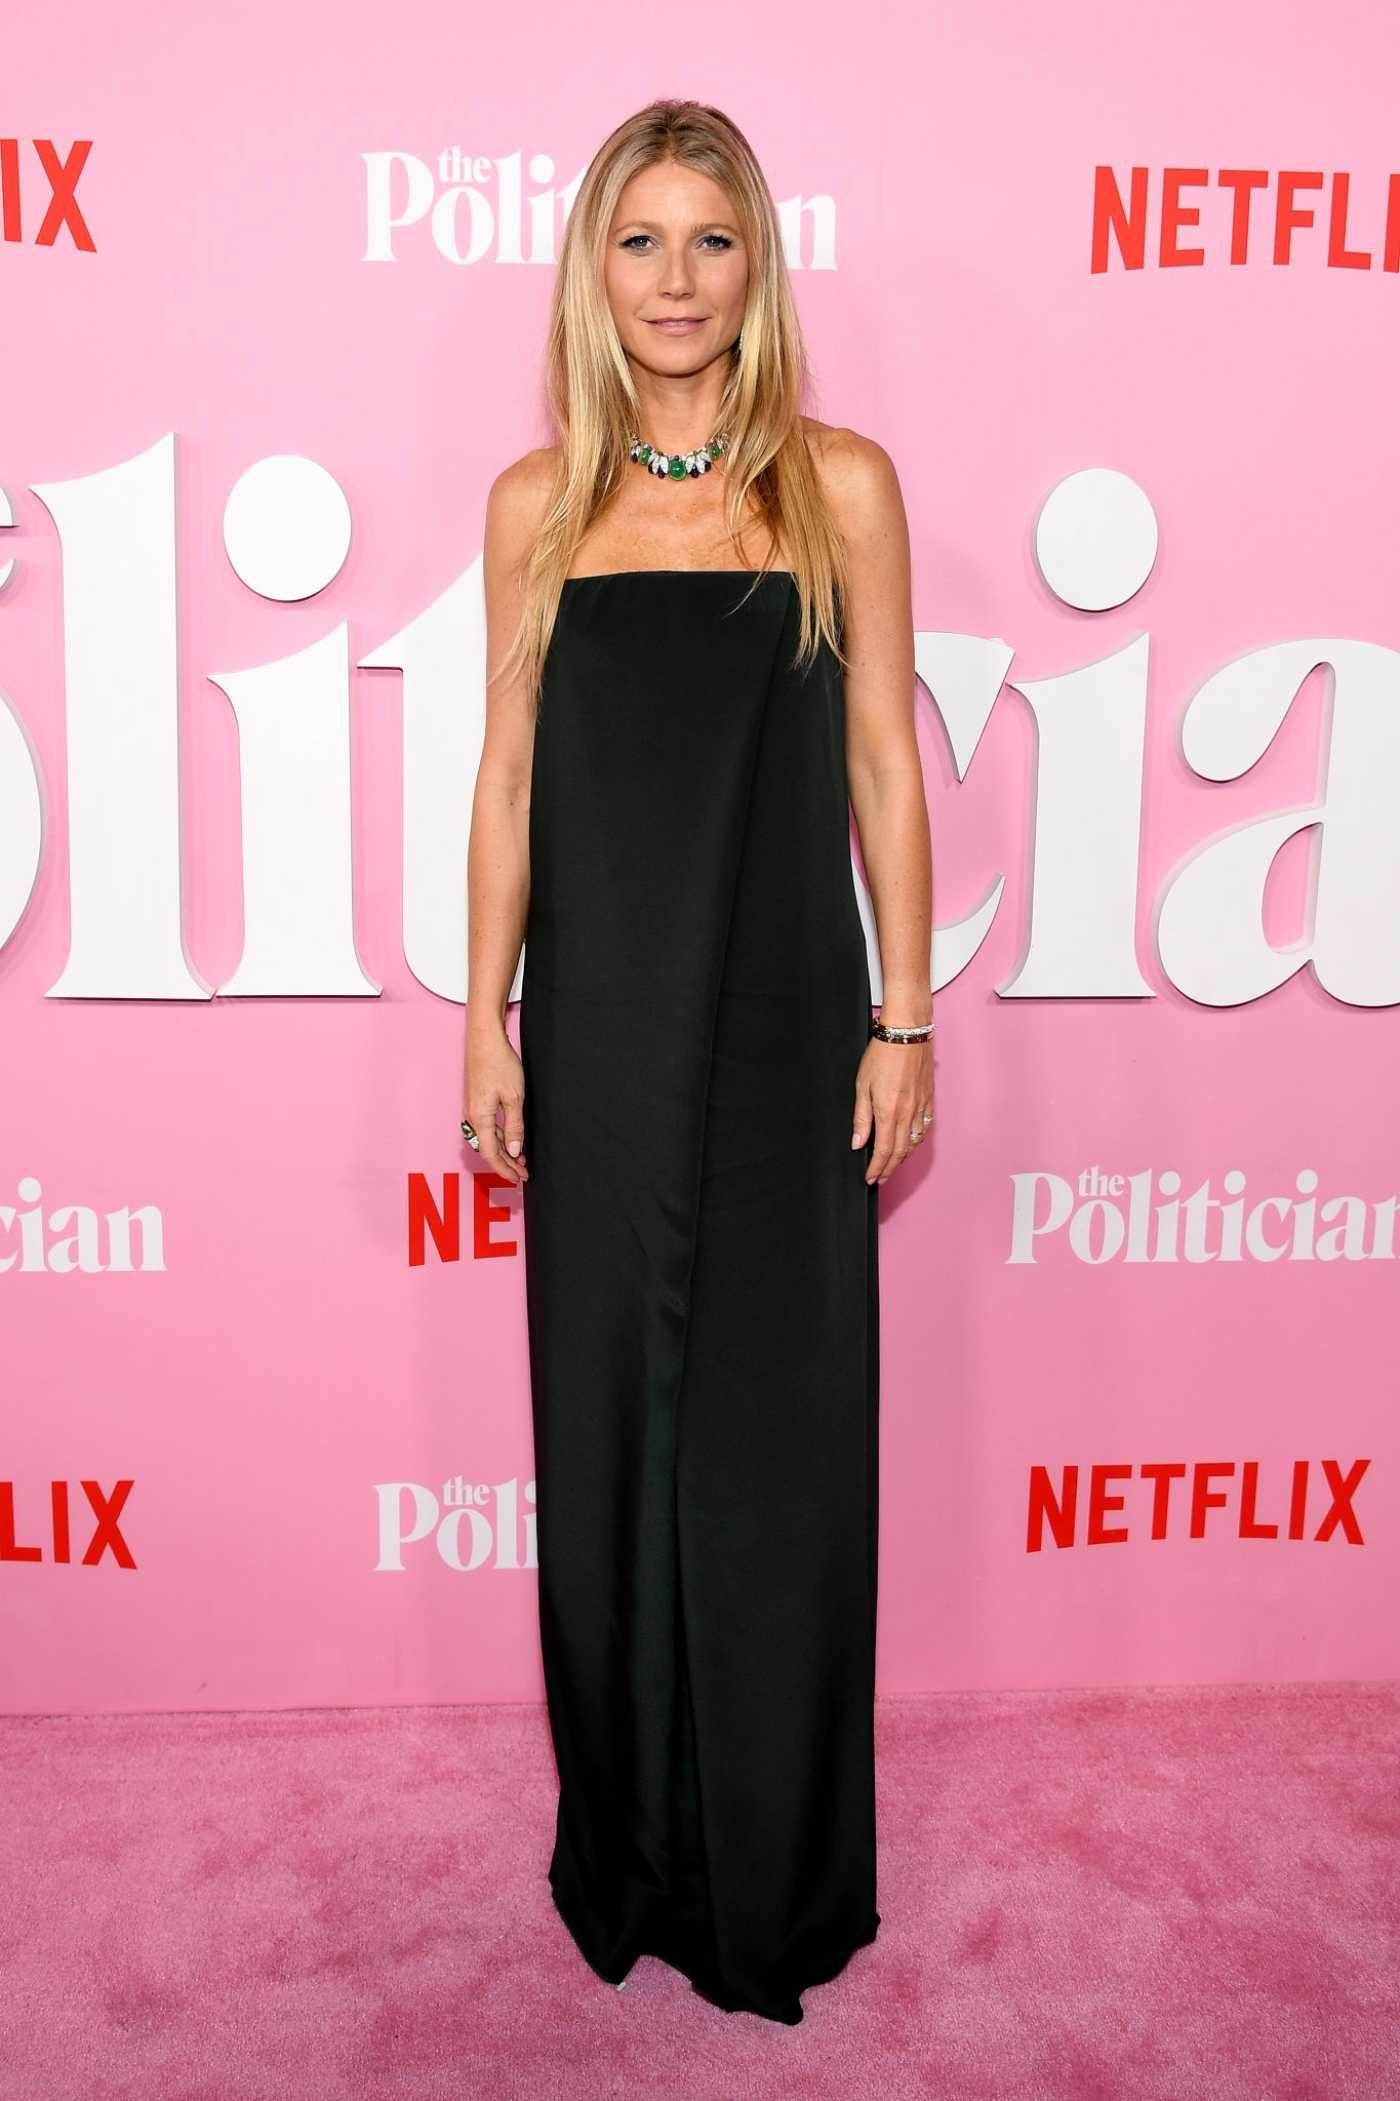 Gwyneth Paltrow Attends The Politician Premiere in New York 09/26/2019